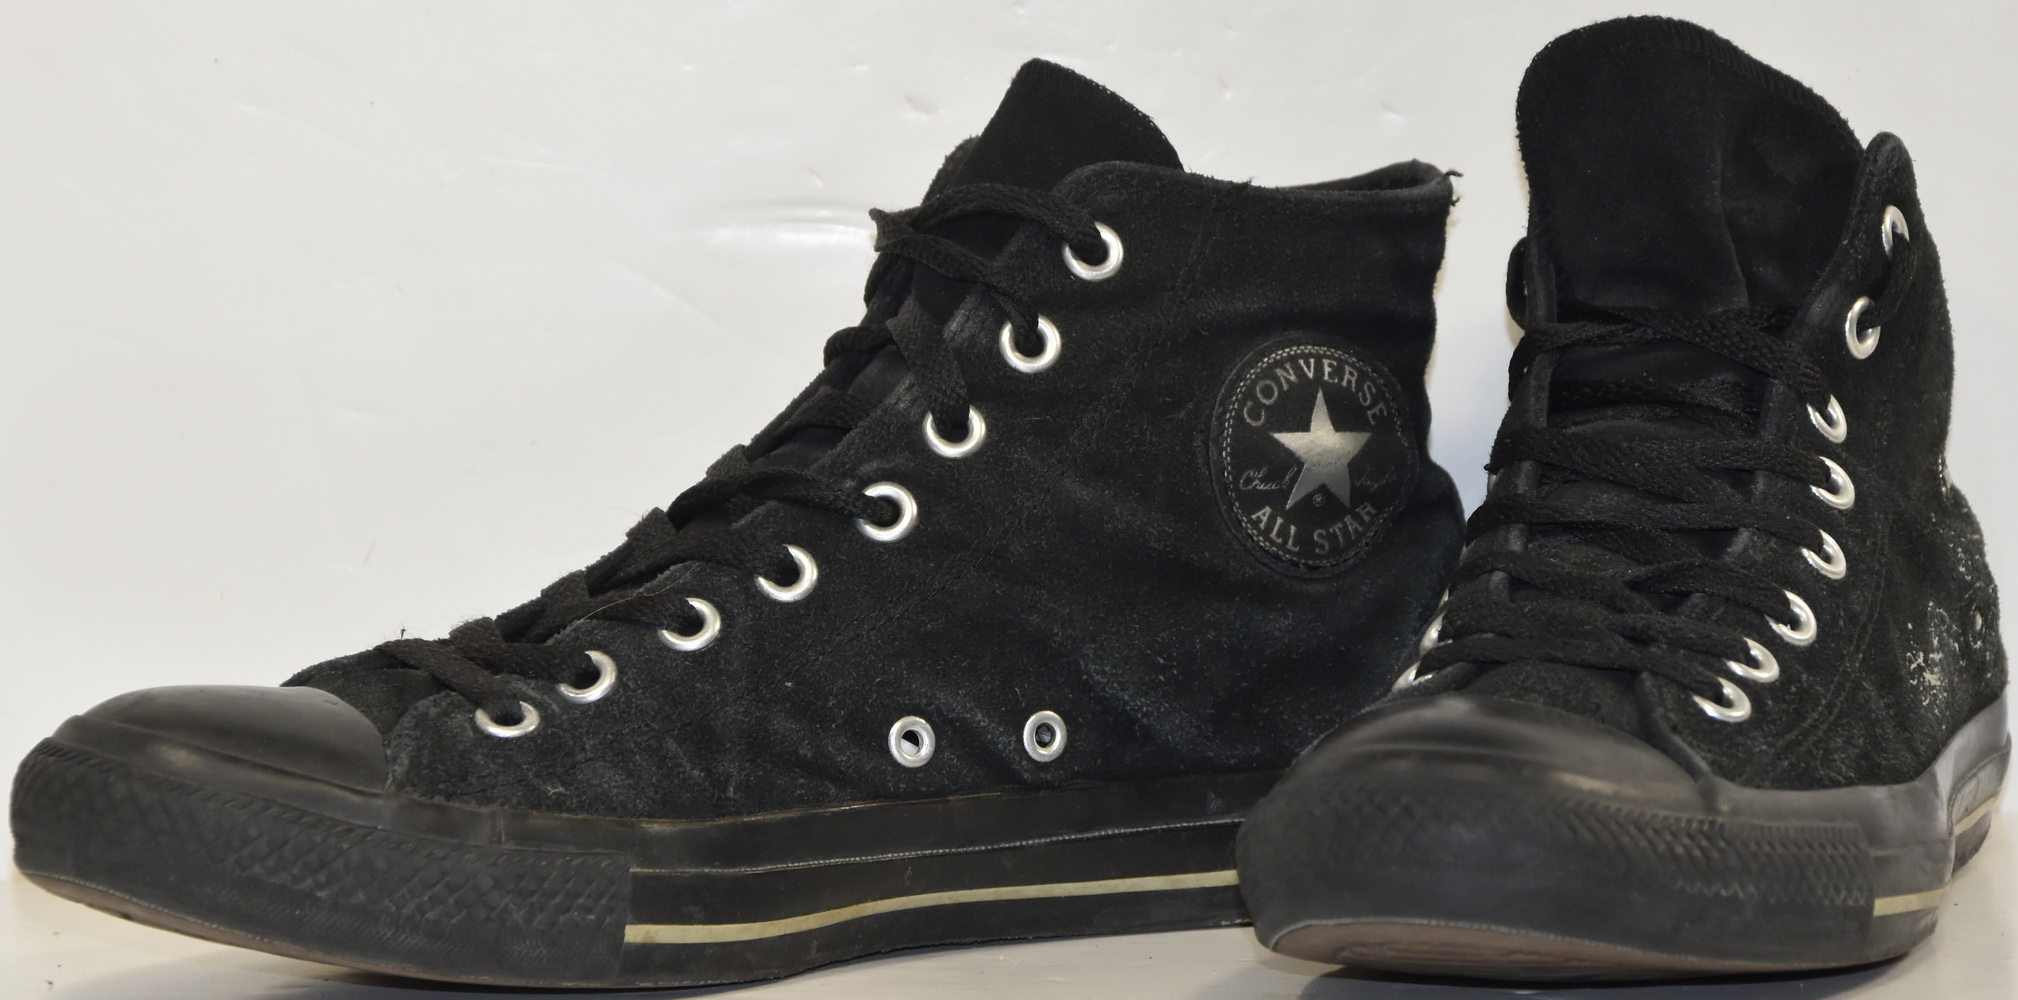 S099 CONVERSE ALL STAR CHUCK TAYLOR HIGH DAIM NOIR T.41.5 UK 8 VALEUR 100